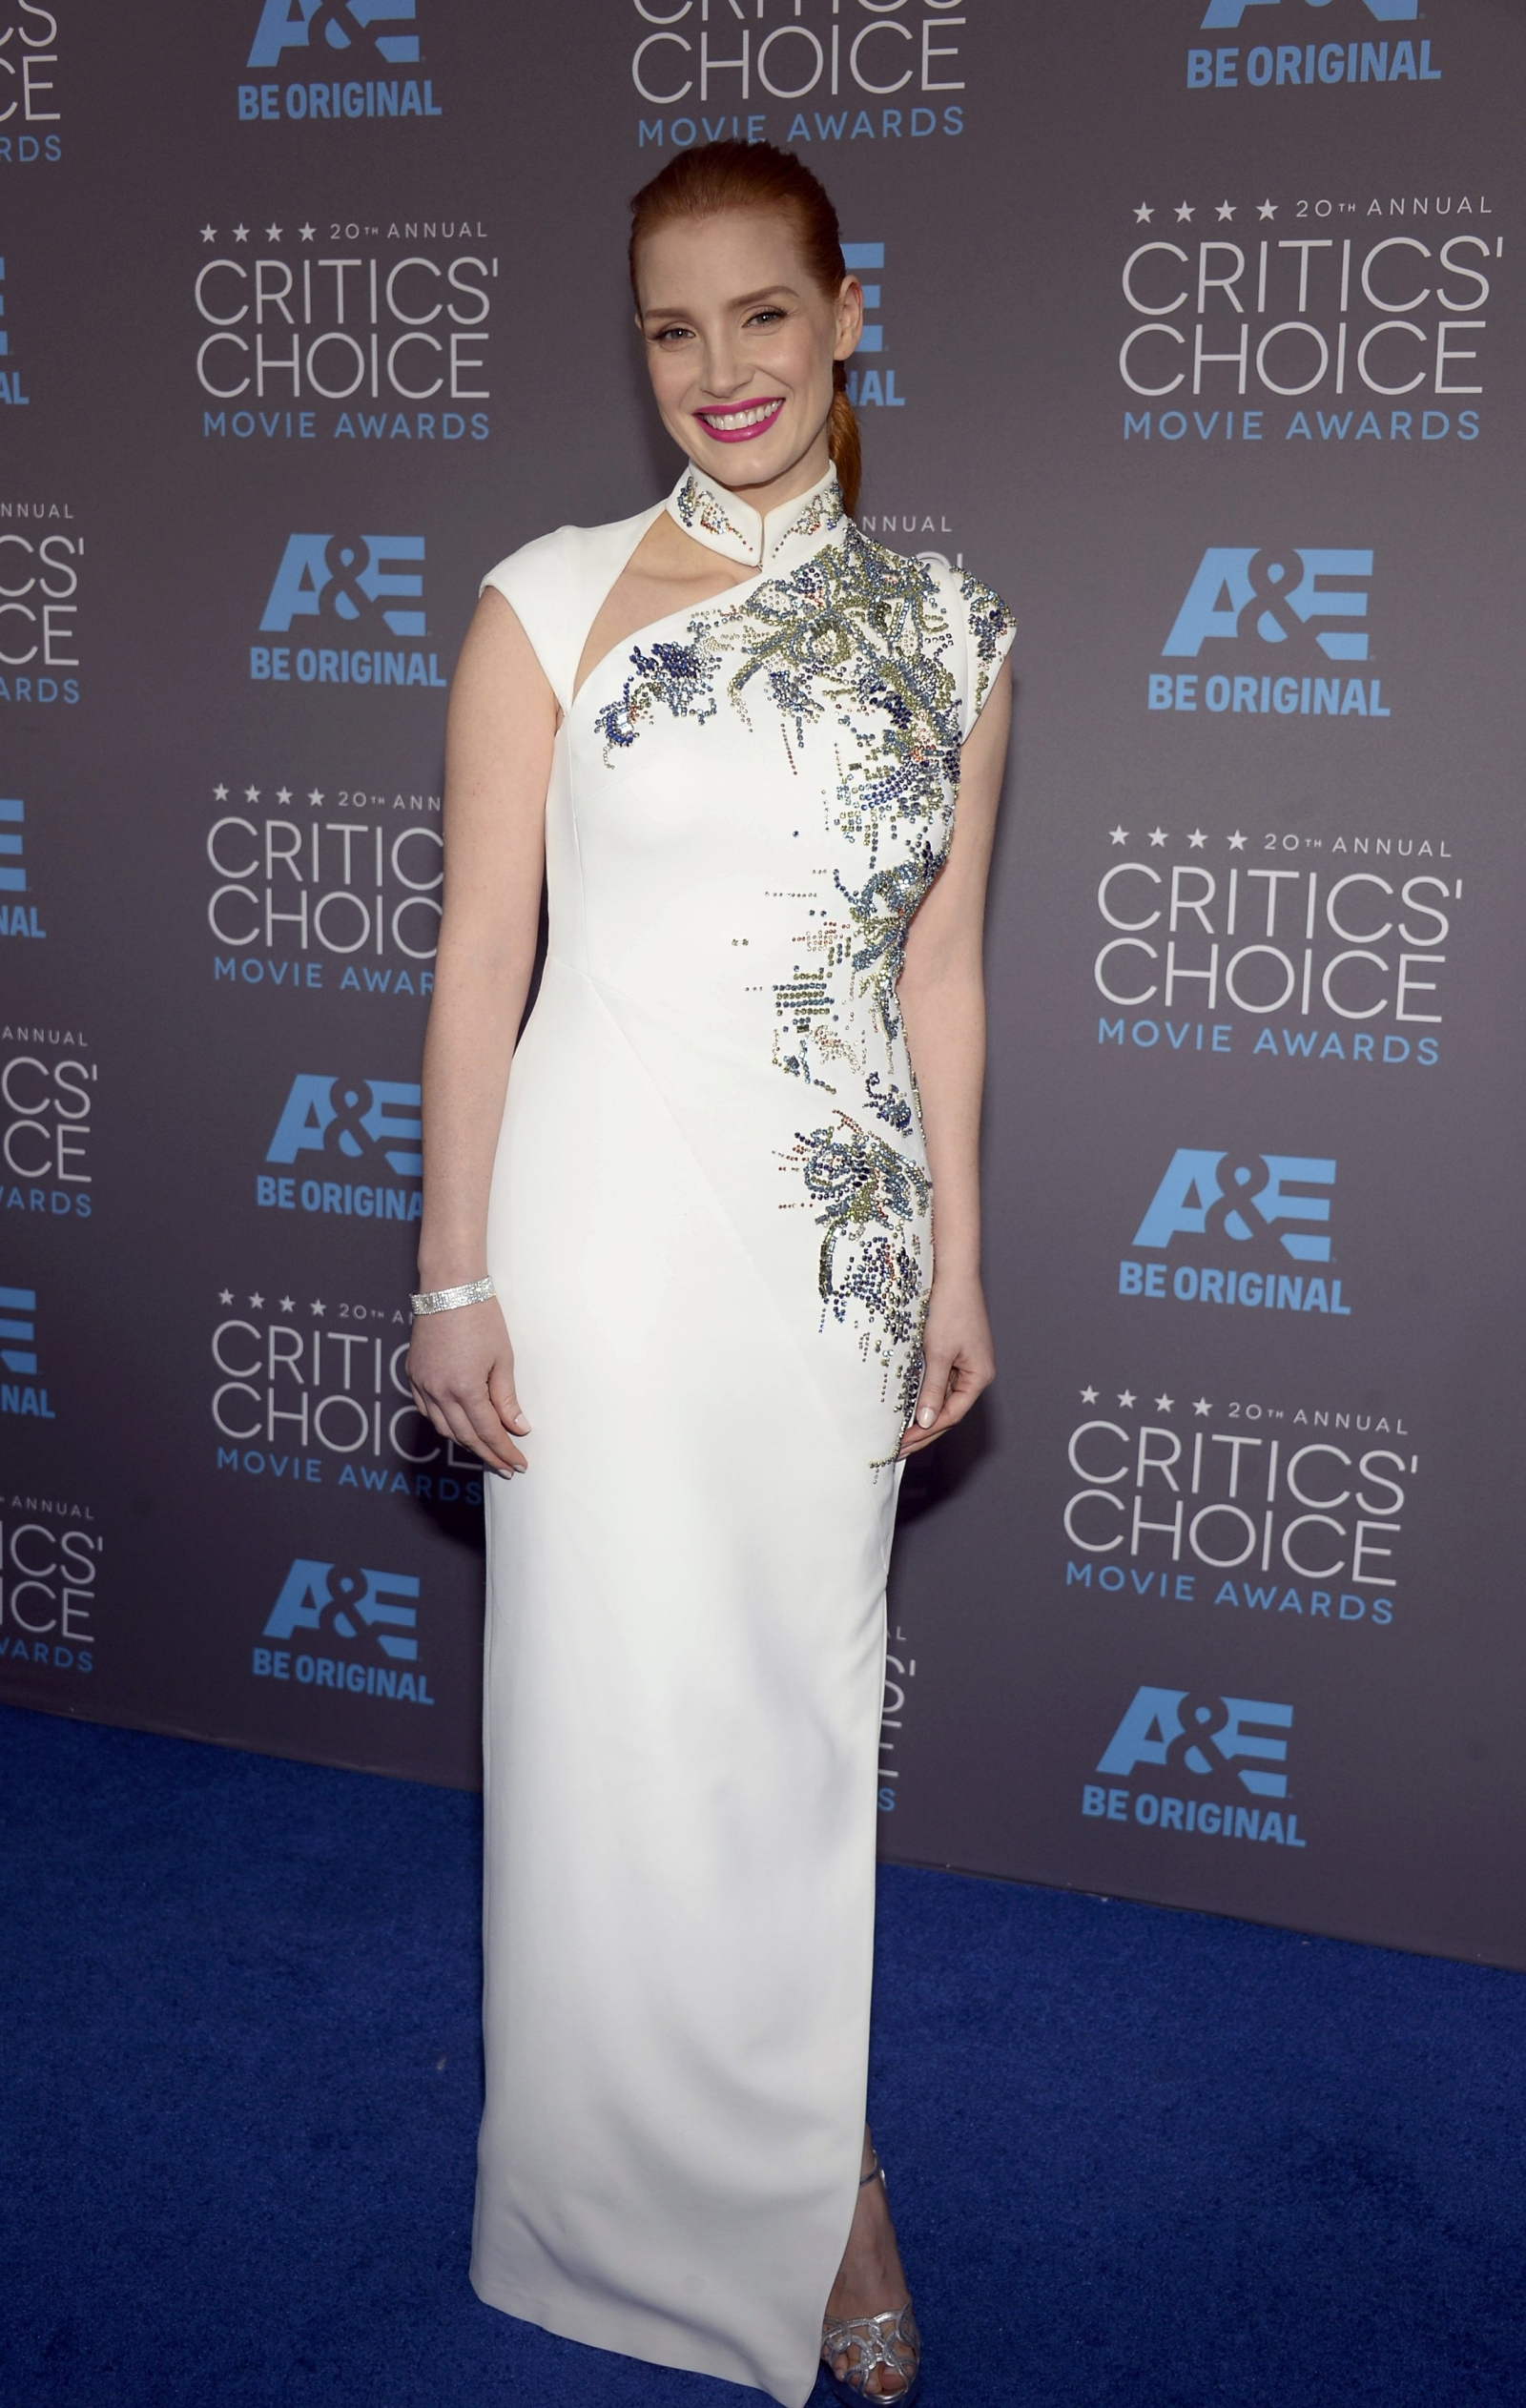 Critics' Choice Movie Awards 2015